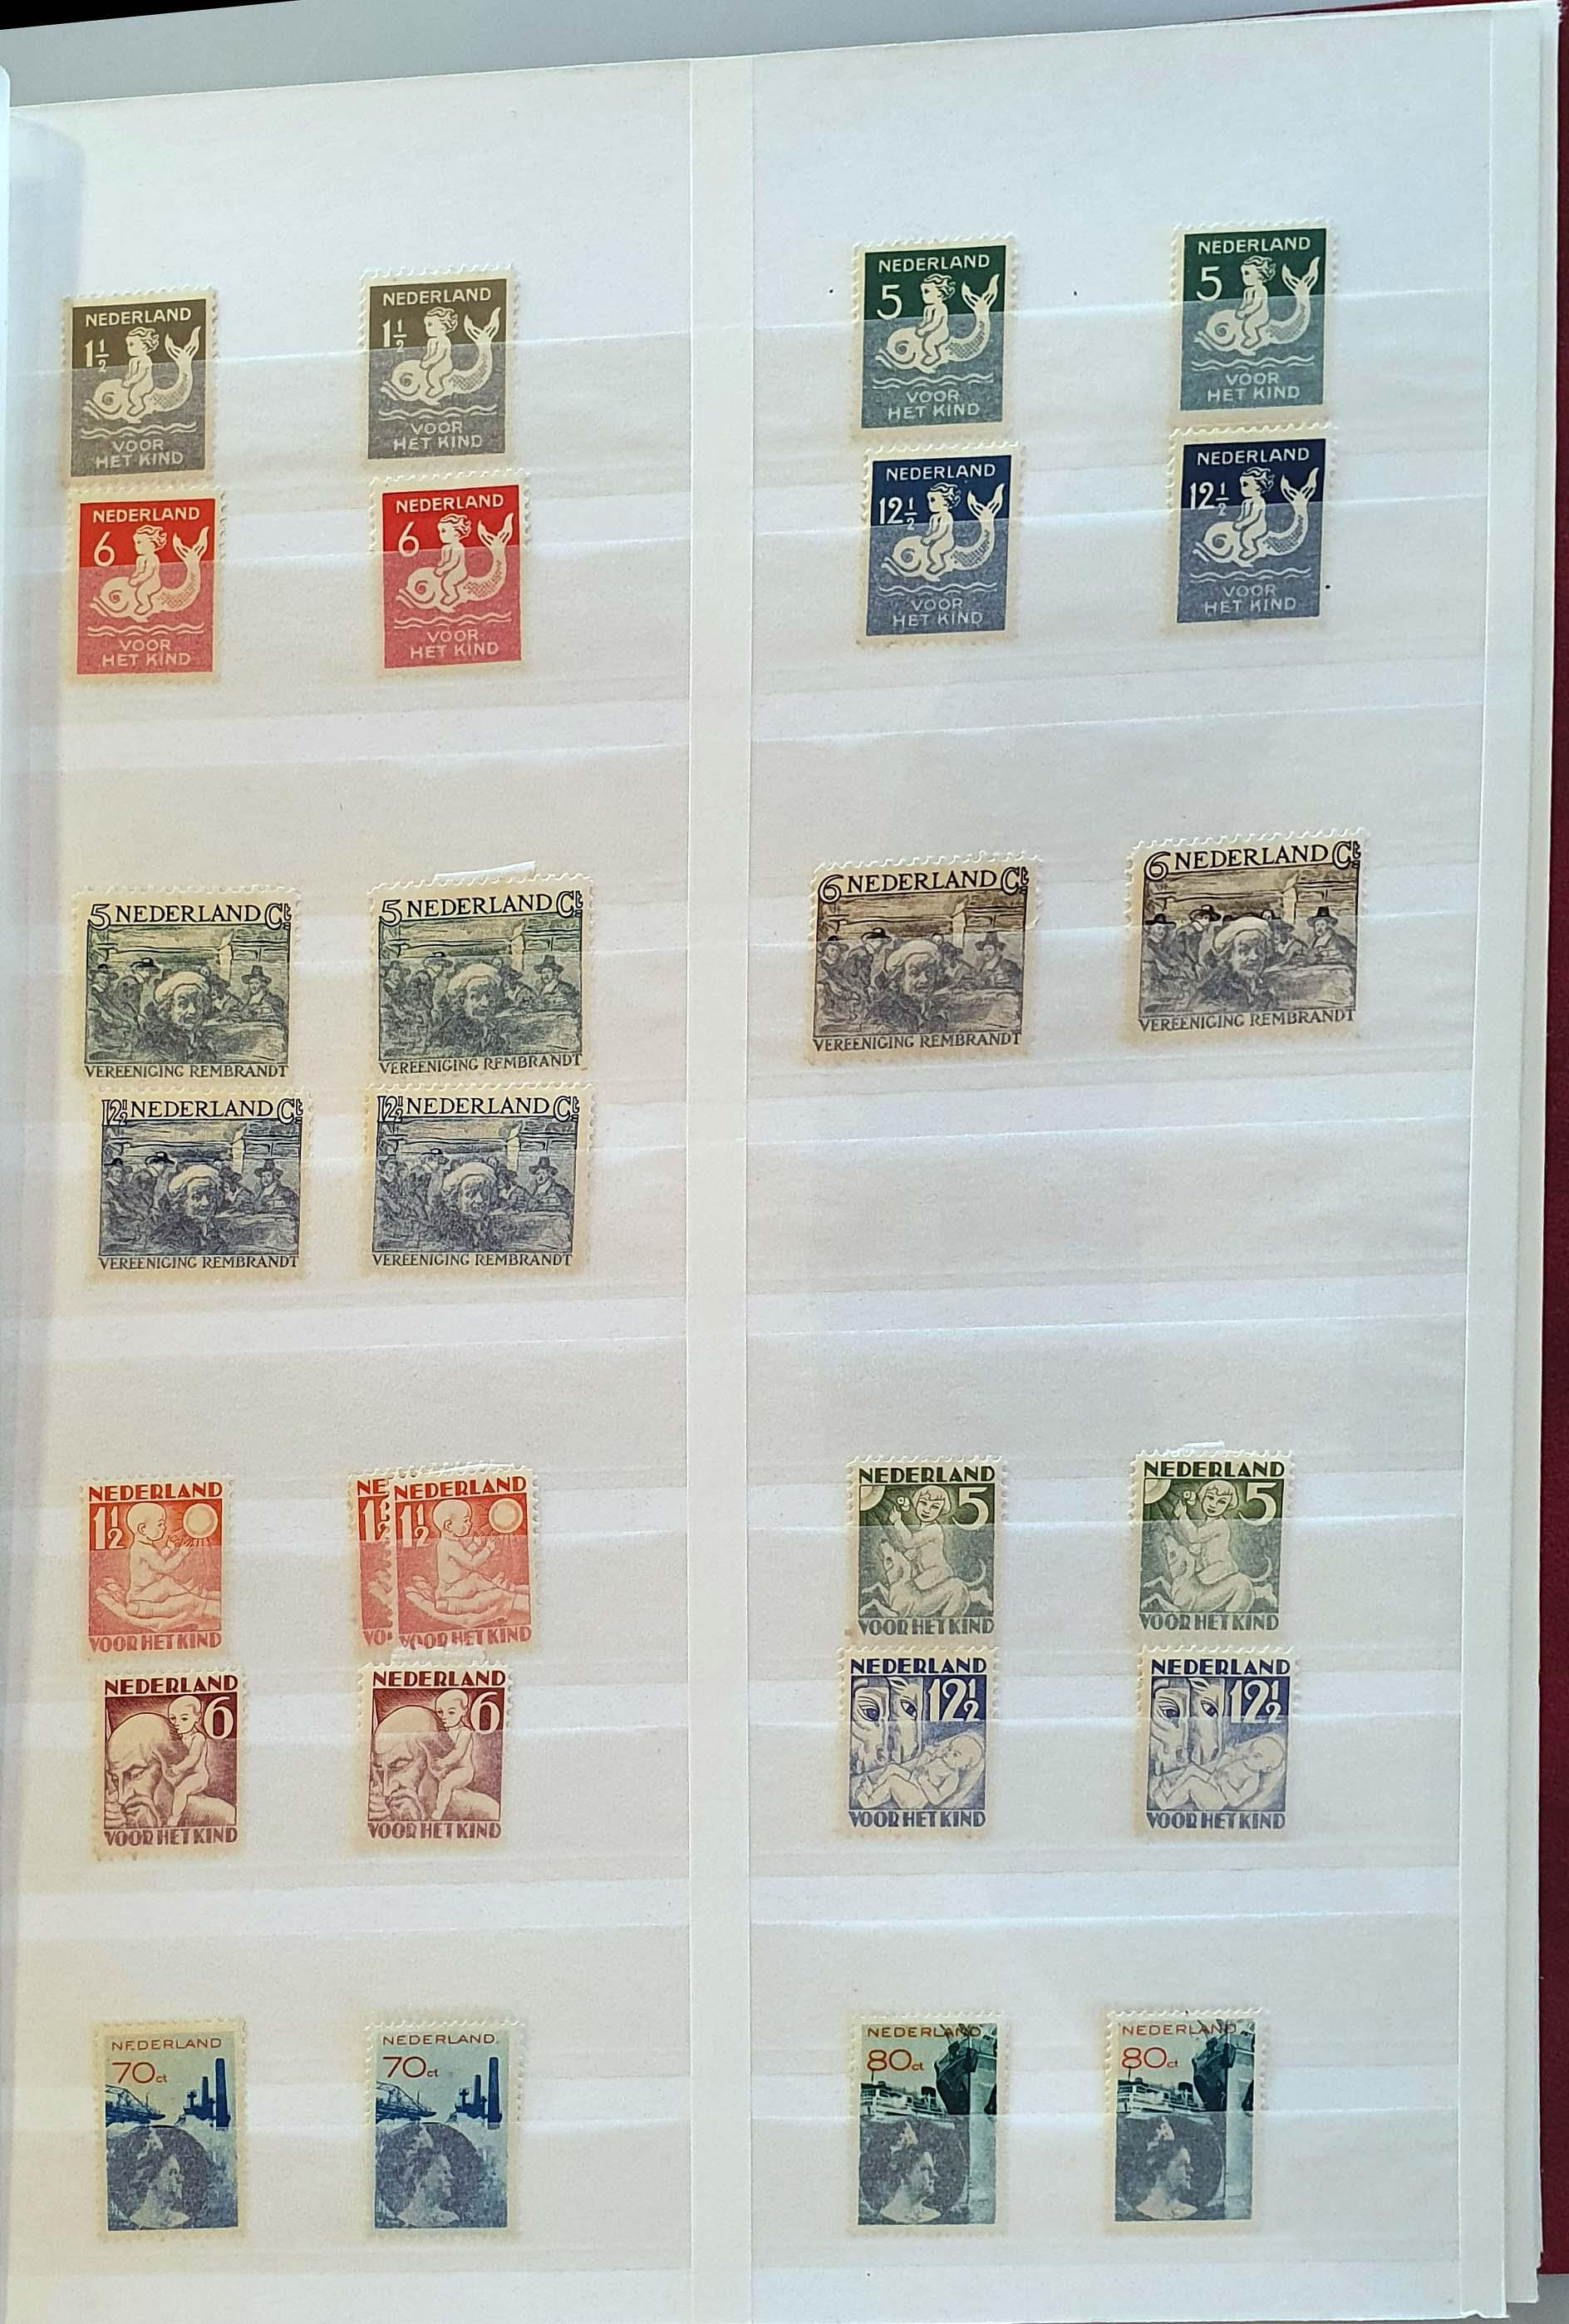 Lot 1604 - Netherlands and former colonies Netherlands -  Corinphila Veilingen Auction 250-253 - Day 2 - Coins, medals, Netherlands and former colonies